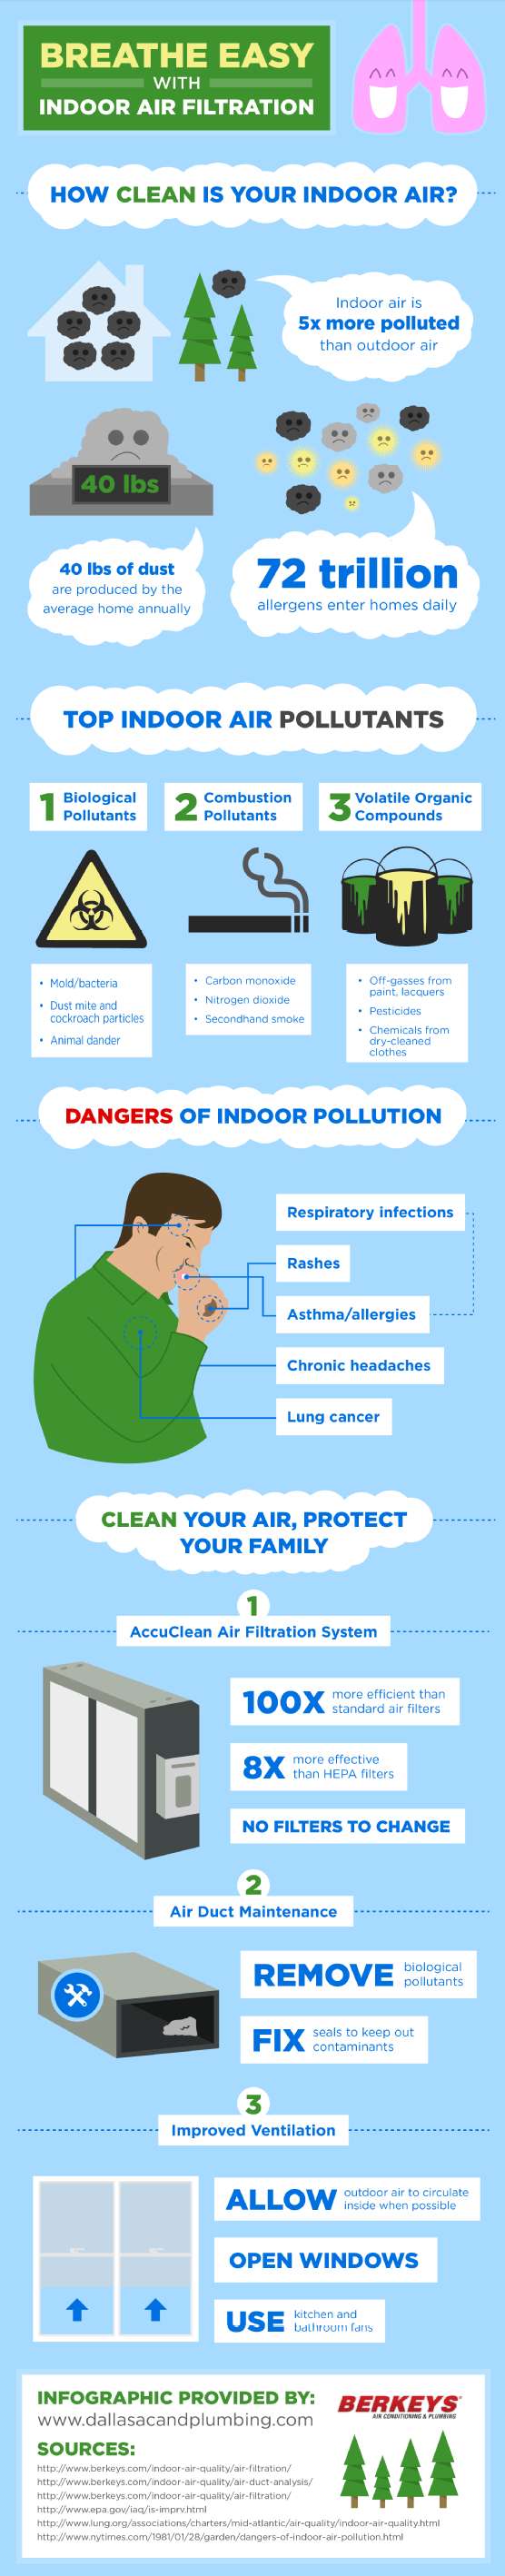 Indoor Air Pollution InfoGraphic HVAC Boiler Heating